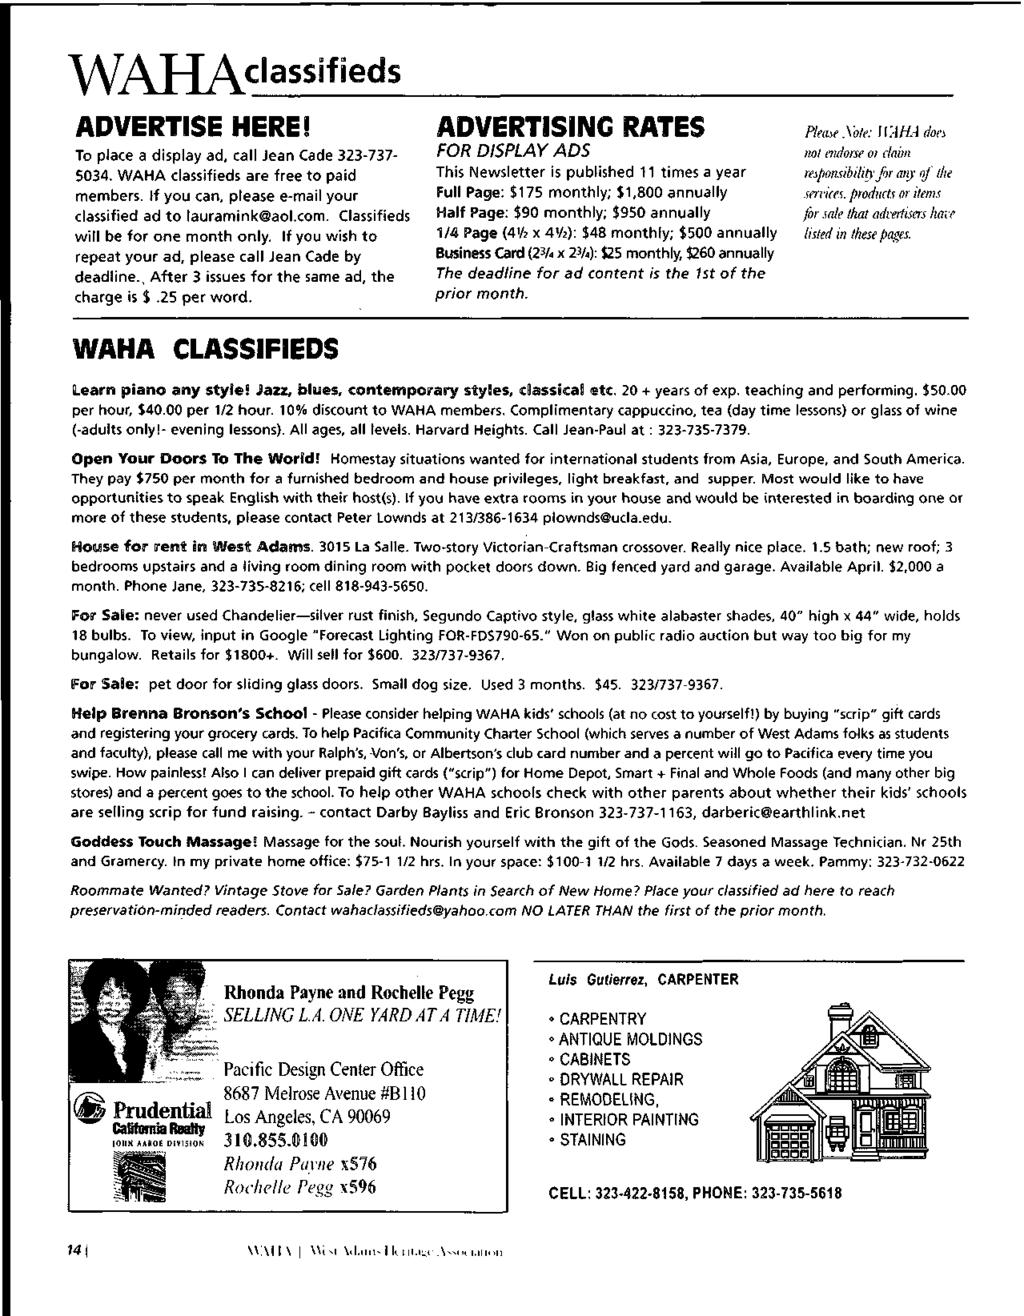 ^/\//\^f^^classifieds ADVERTISE HERE! To place a display ad, call Jean Cade 323-737- 5034. WAHA classifieds are free to paid members. If you can, please e-mail your classified ad to lauramink@aol.com.